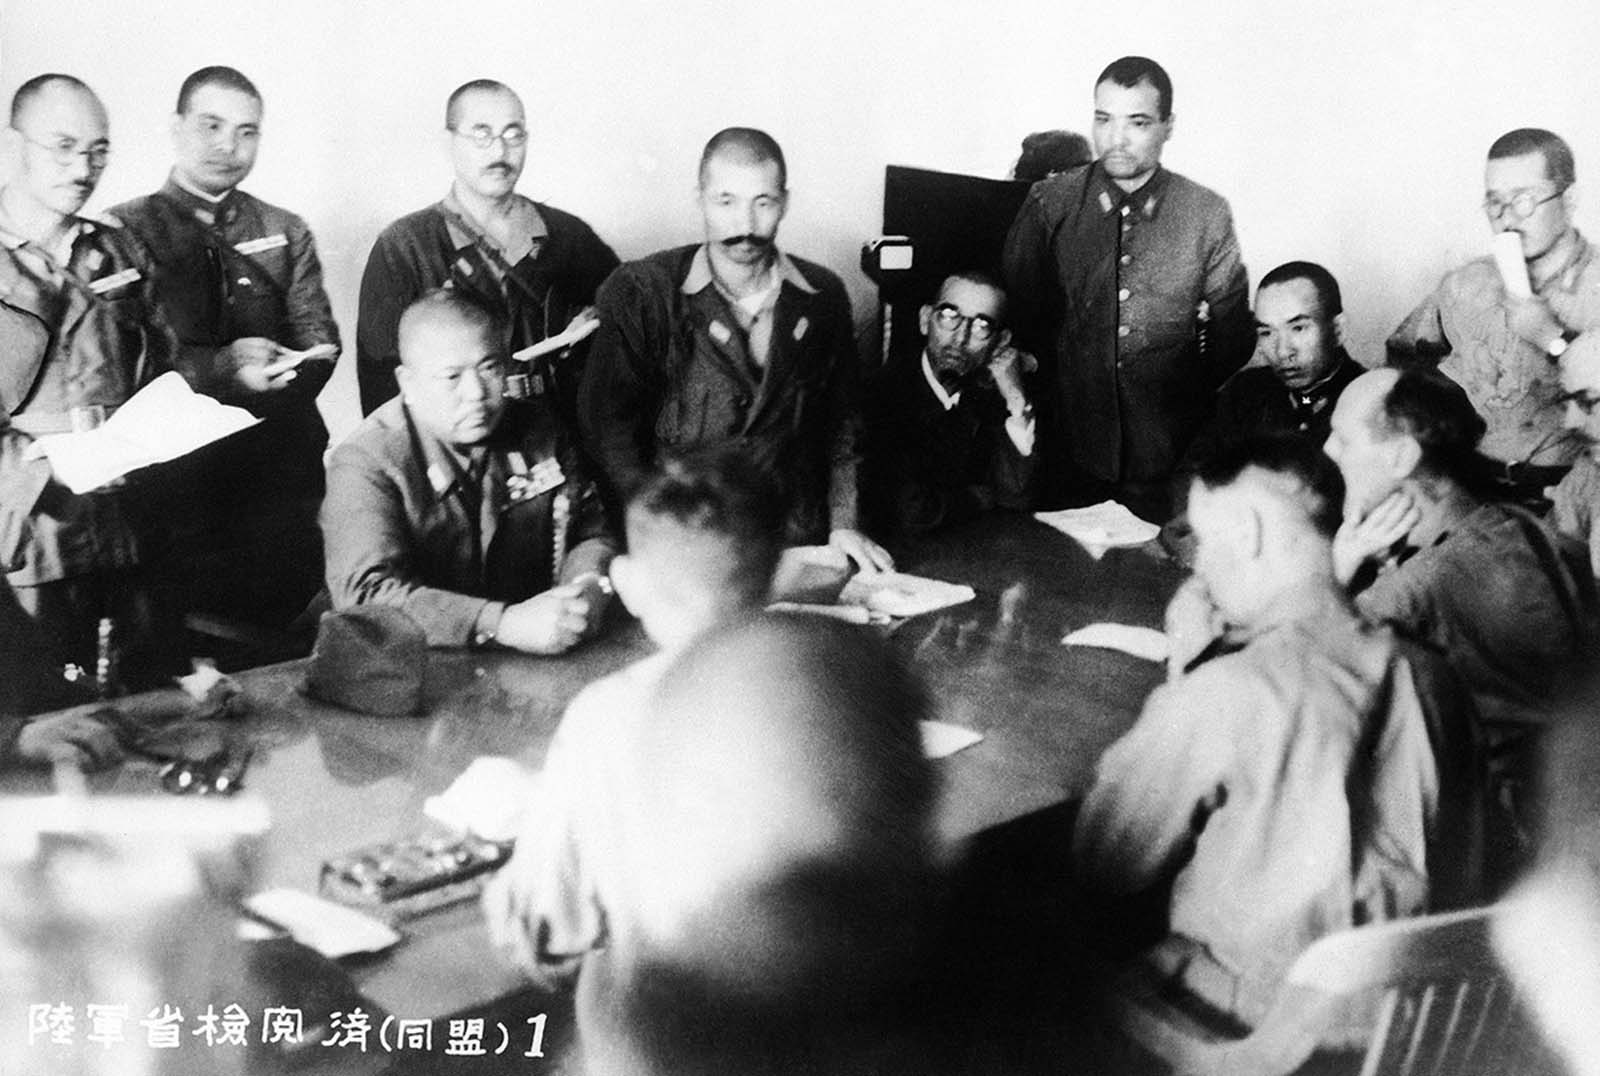 The conference at which Singapore surrendered on February 15, 1942. Man seated at left, facing camera, is identified as Lieut. Gen. Tomoyuki Yamashita, the Japanese Commander. Man in right foreground, profile to camera, is identified as Lieut. Gen. A. E. Percival, British commander.